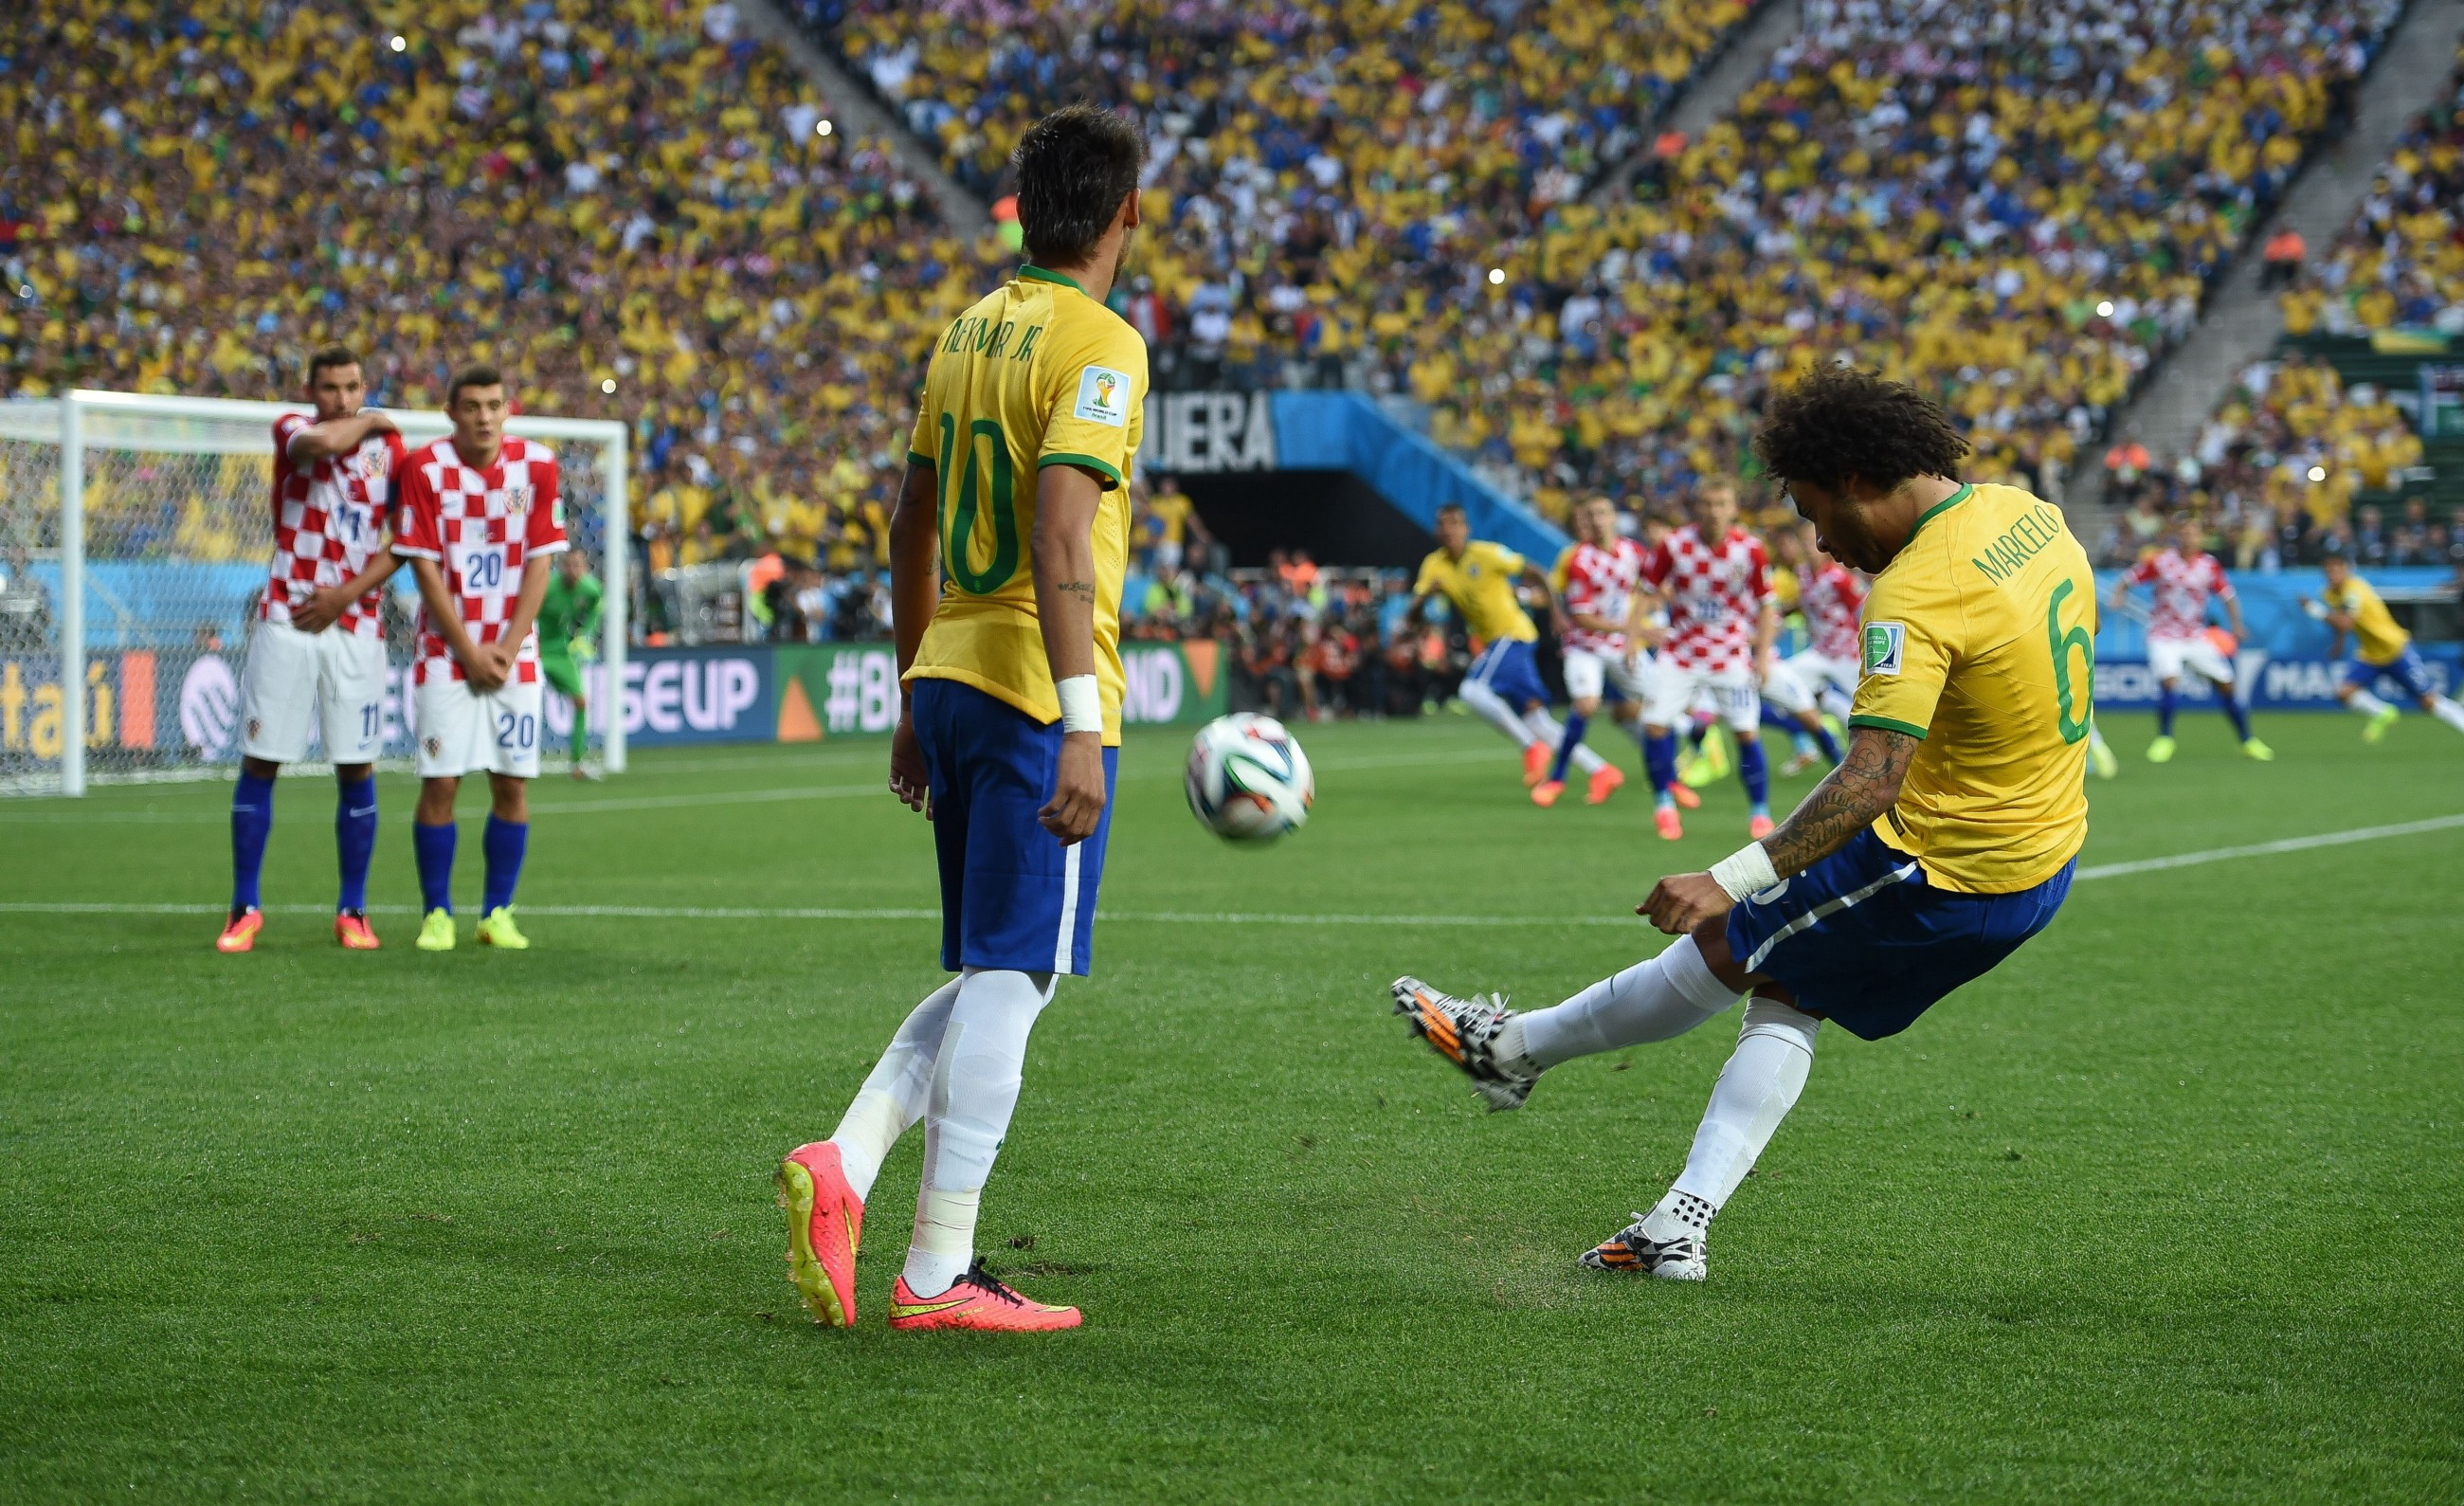 211732b054d The 2018 FIFA World Cup kicks-off on June 14 in Russia. The quadrennial  international soccer showcase features 32 teams from around the globe  competing for ...